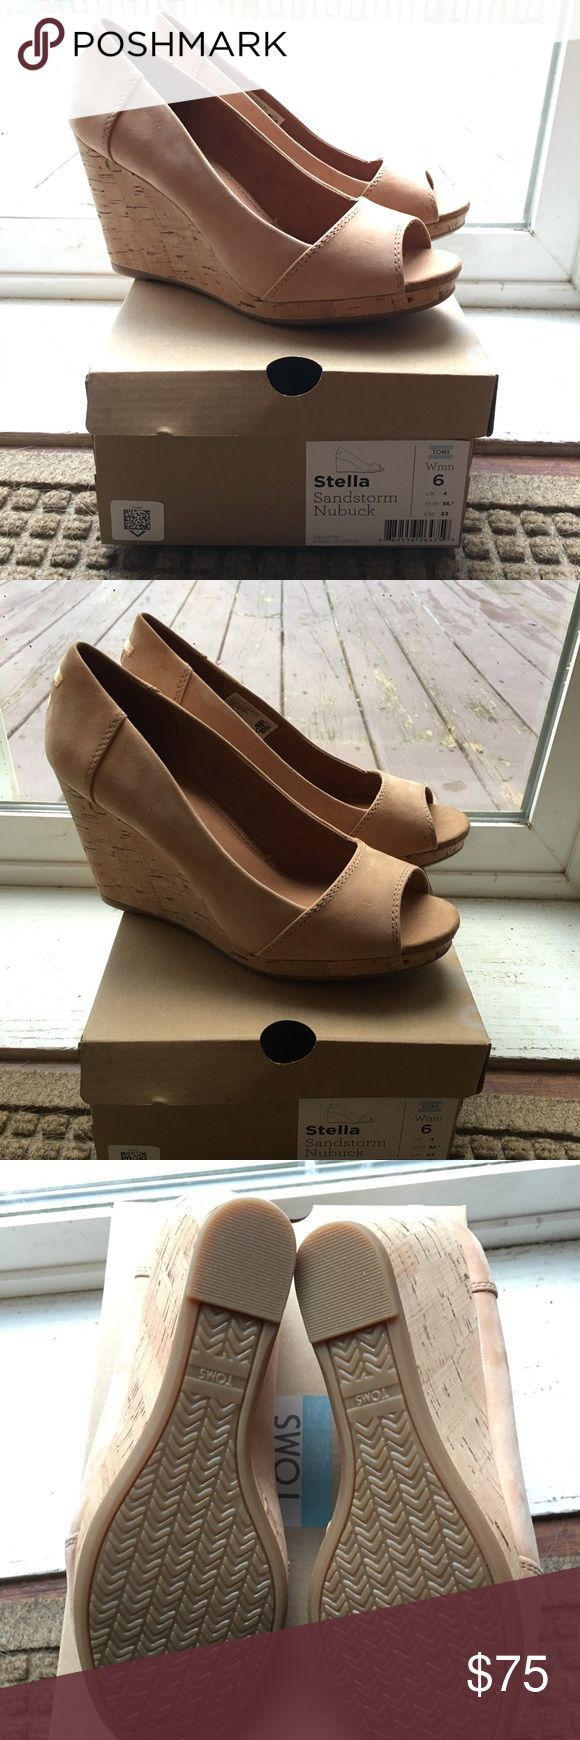 Toms Stella Wedges in Sandstorm Nubuck size 6 Brand new, never worn Toms wedges in a size 6. Originally purchased to wear to a wedding but they were too big and I did not return them online in time to get a refund or exchange. Toms Shoes Wedges